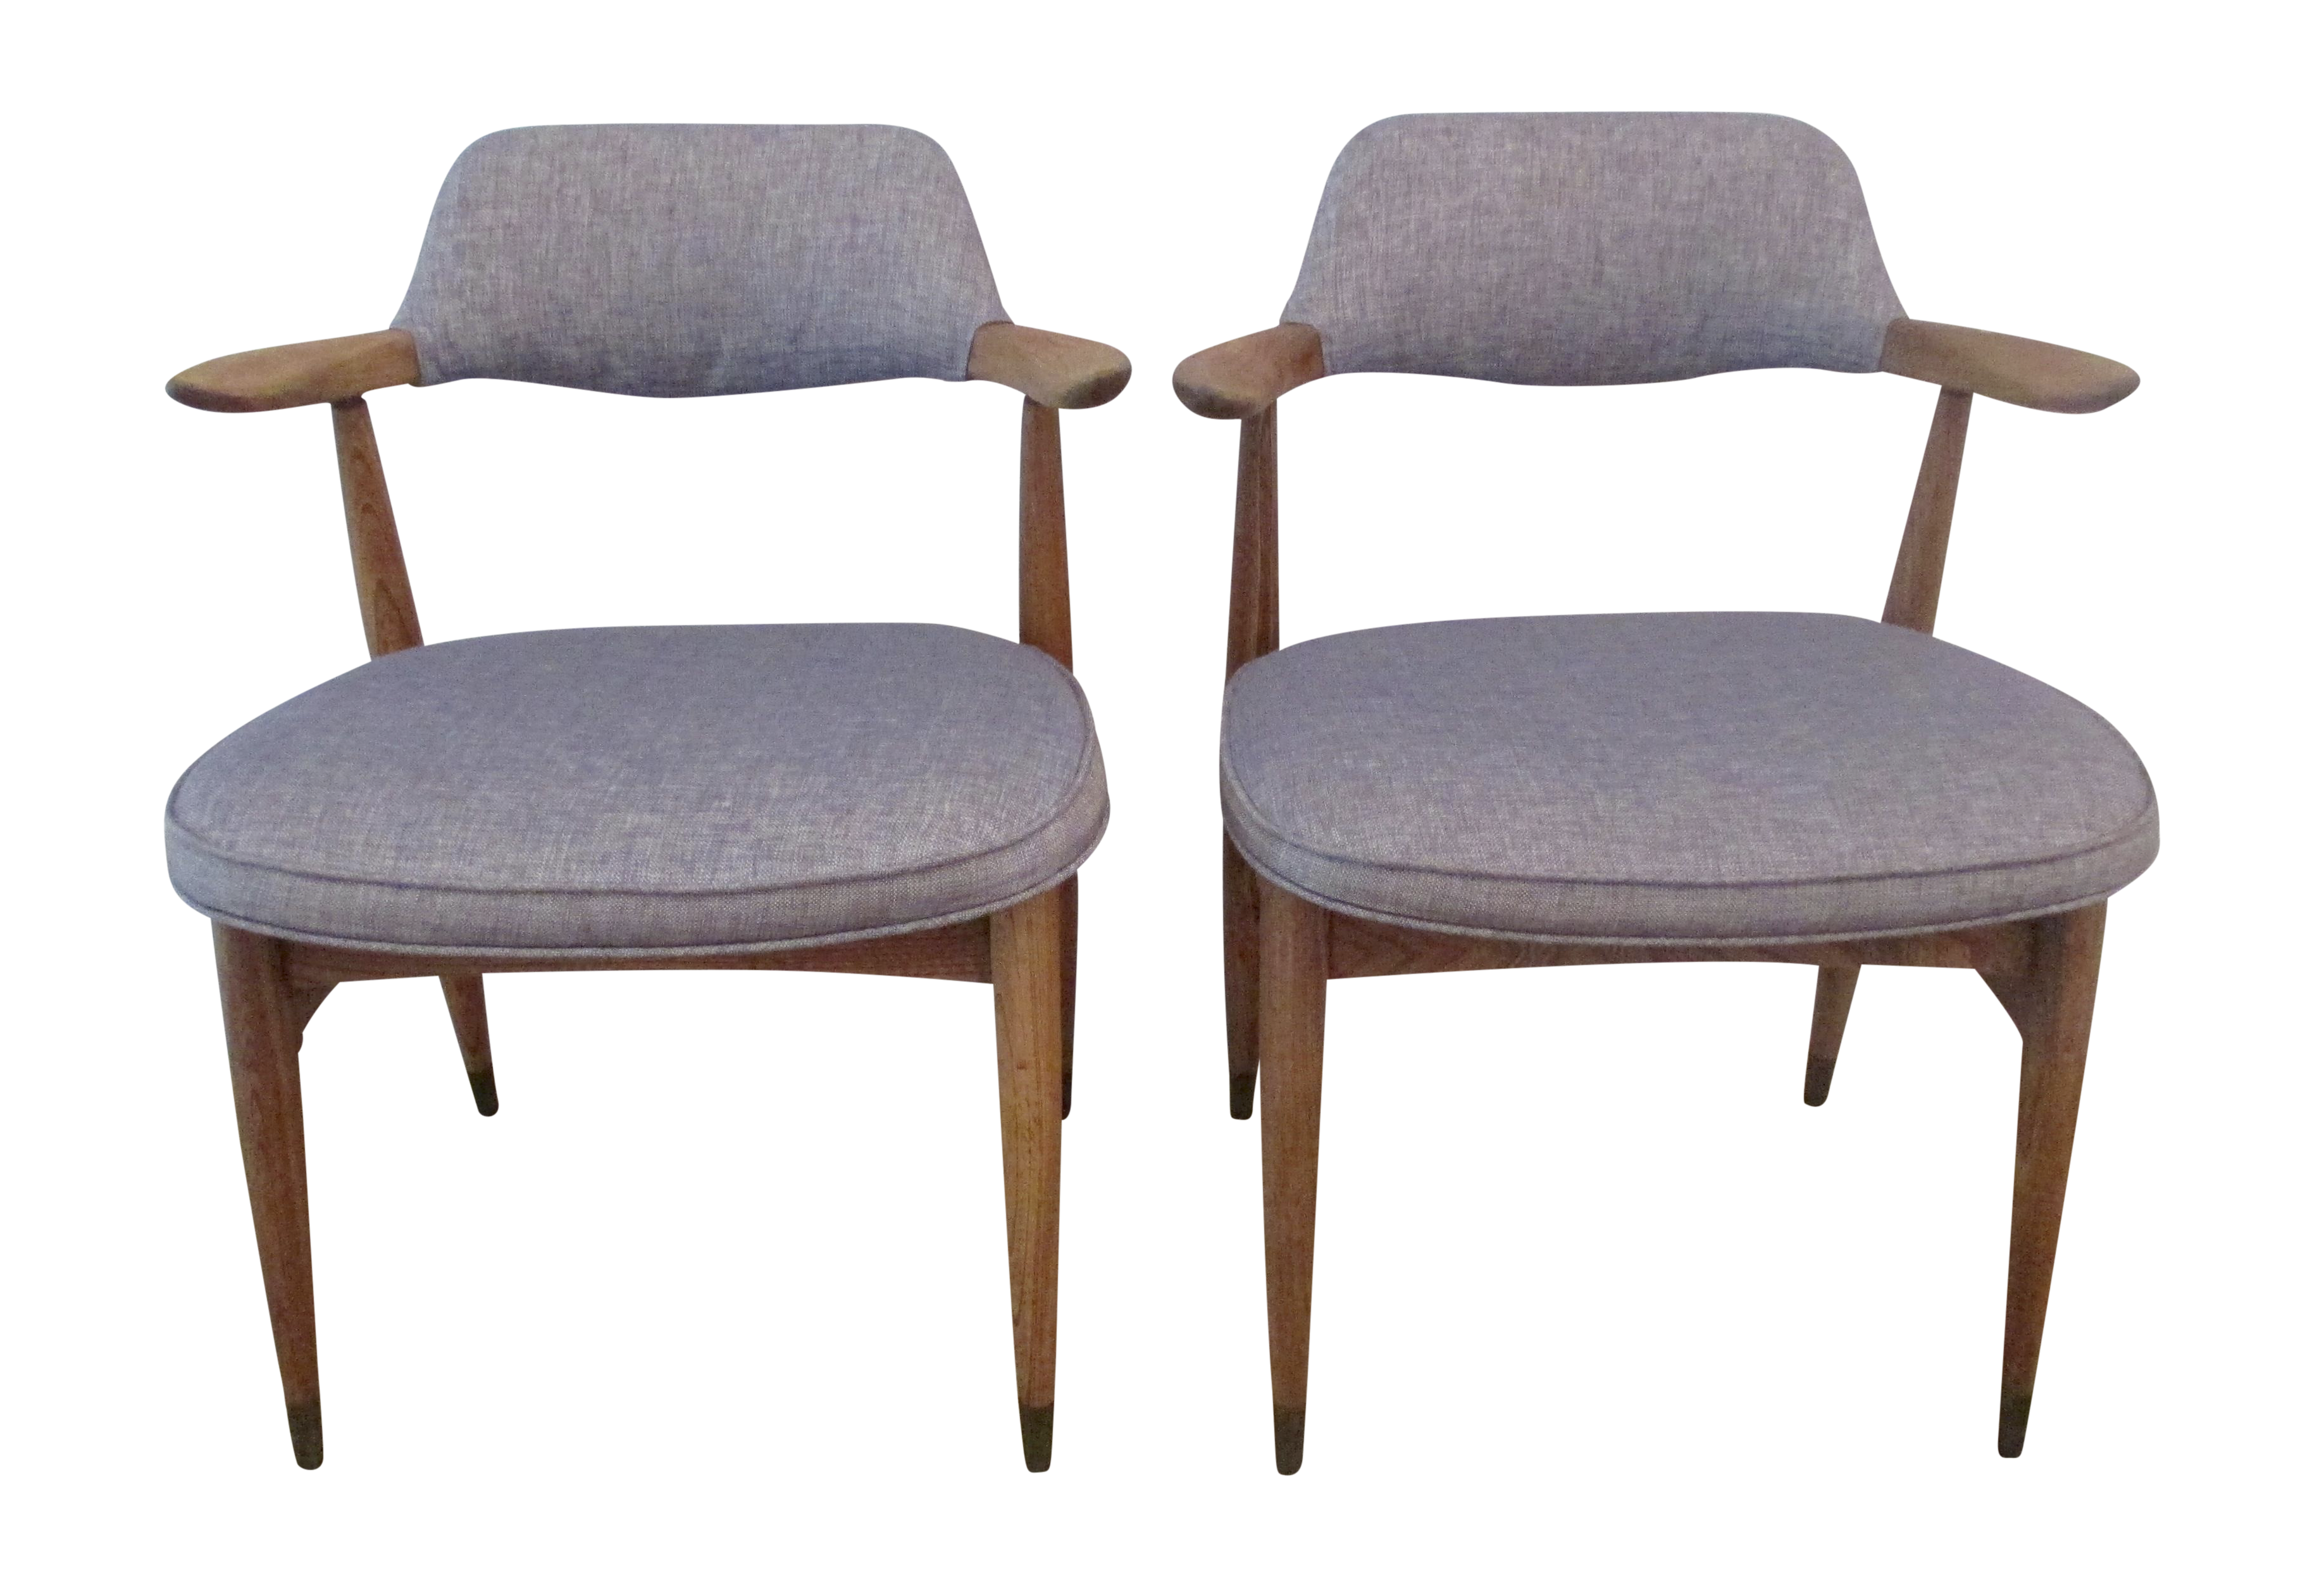 Surprising This Pair Of 1963 Paoli Chairs Have Been Refreshed With New Caraccident5 Cool Chair Designs And Ideas Caraccident5Info